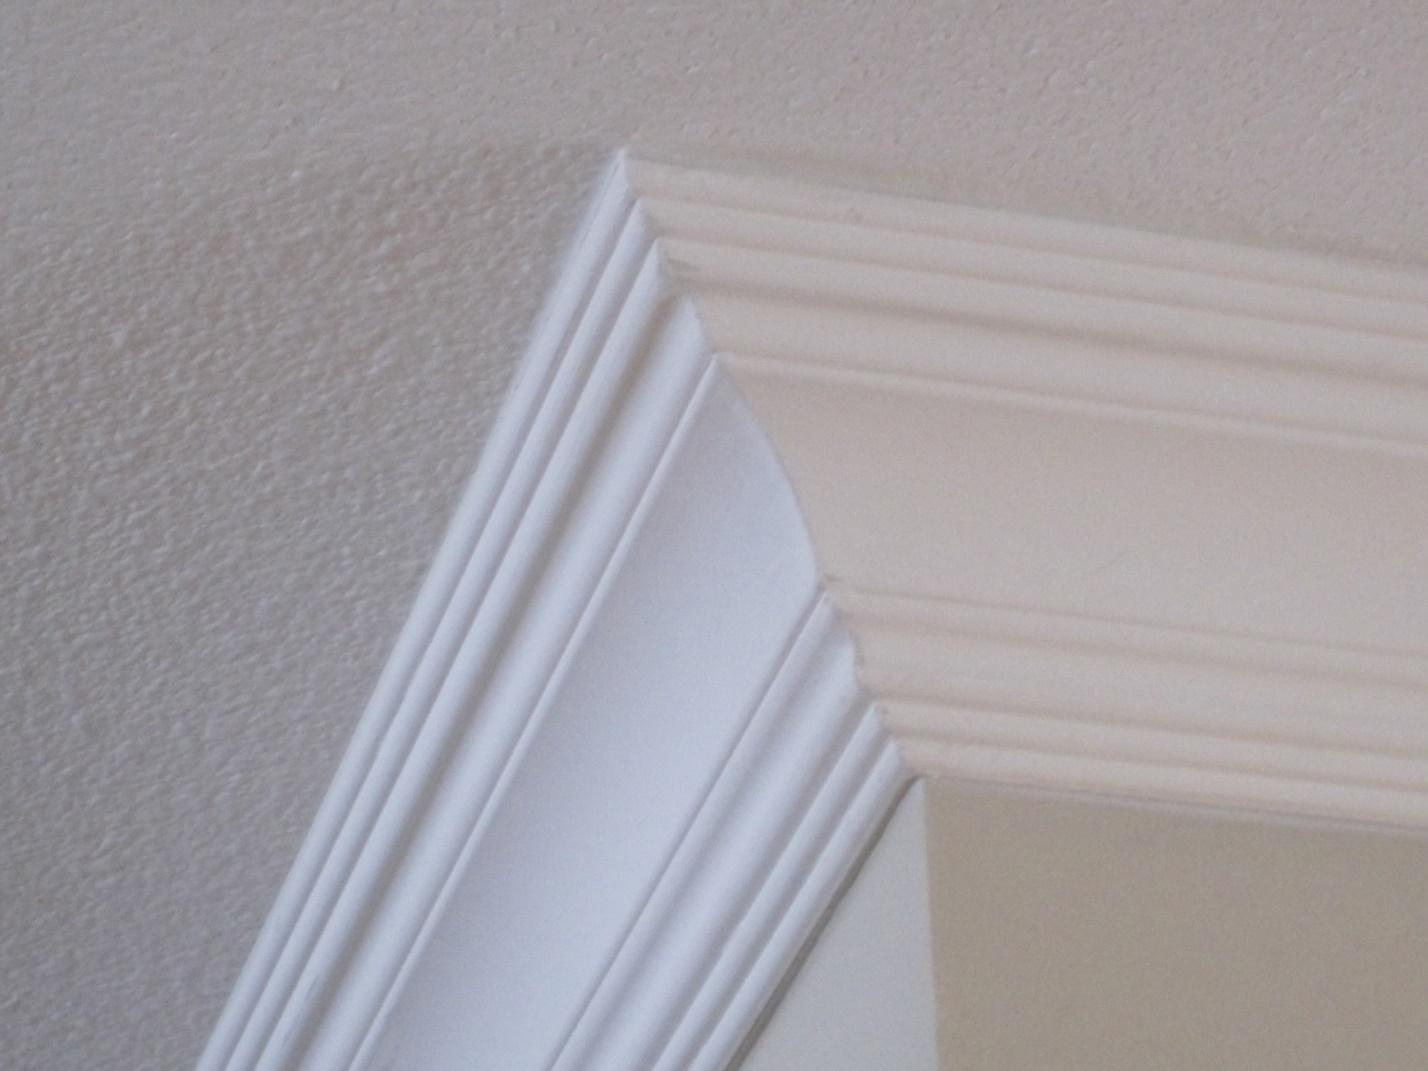 mdf crown molding - Ceiling Molding Design Ideas